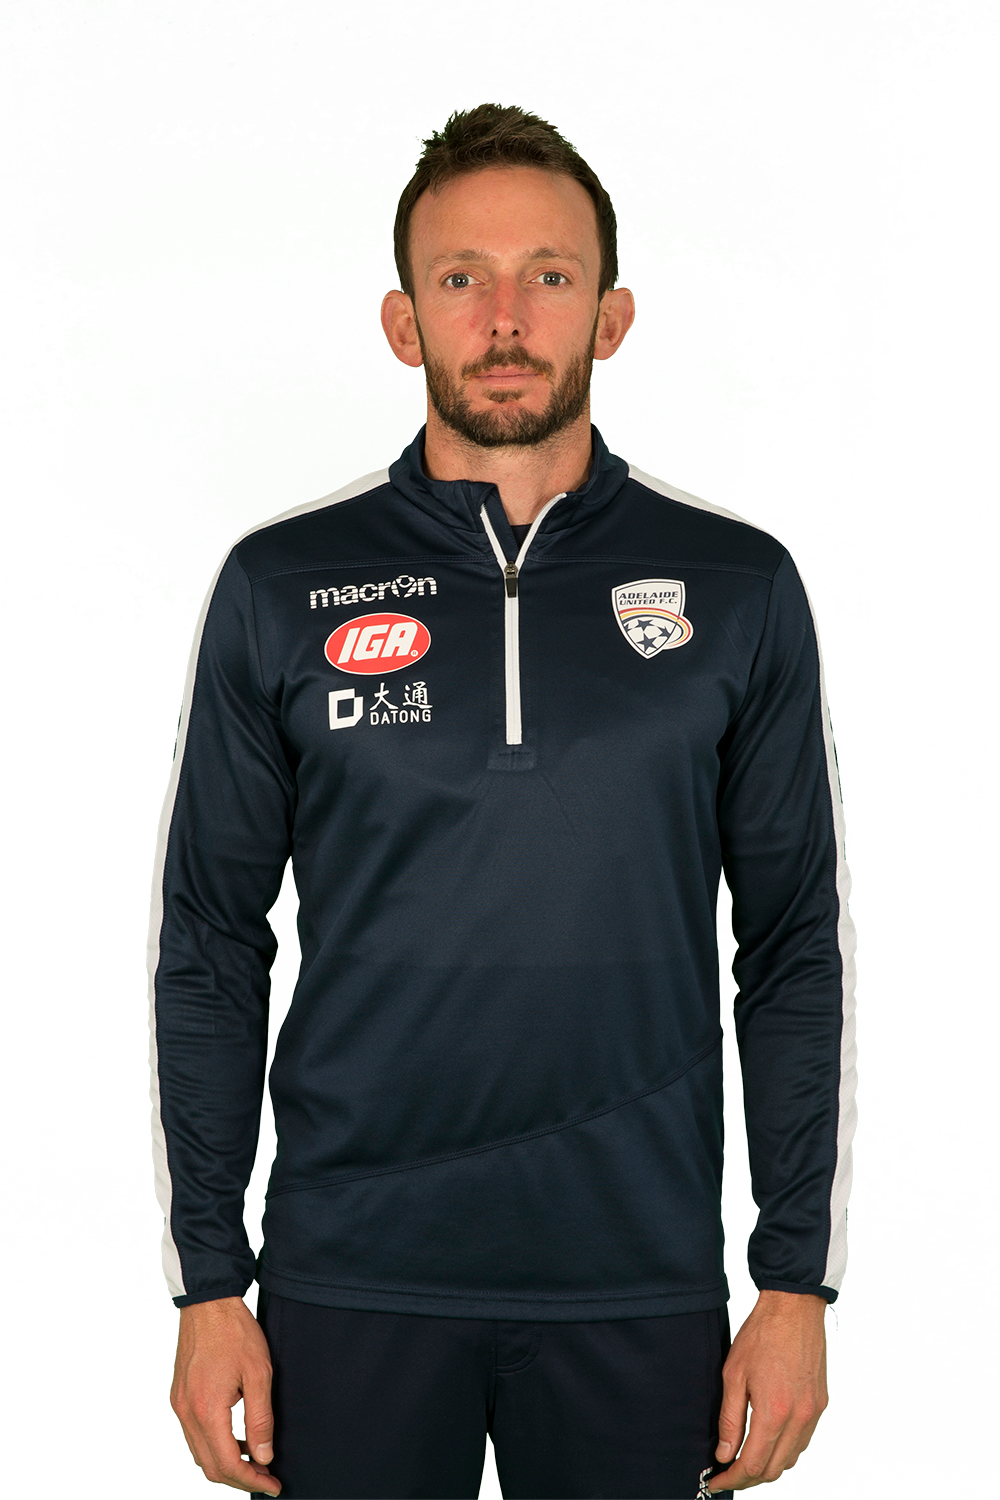 Greg King High Performance Manager for Adelaide United Football Club